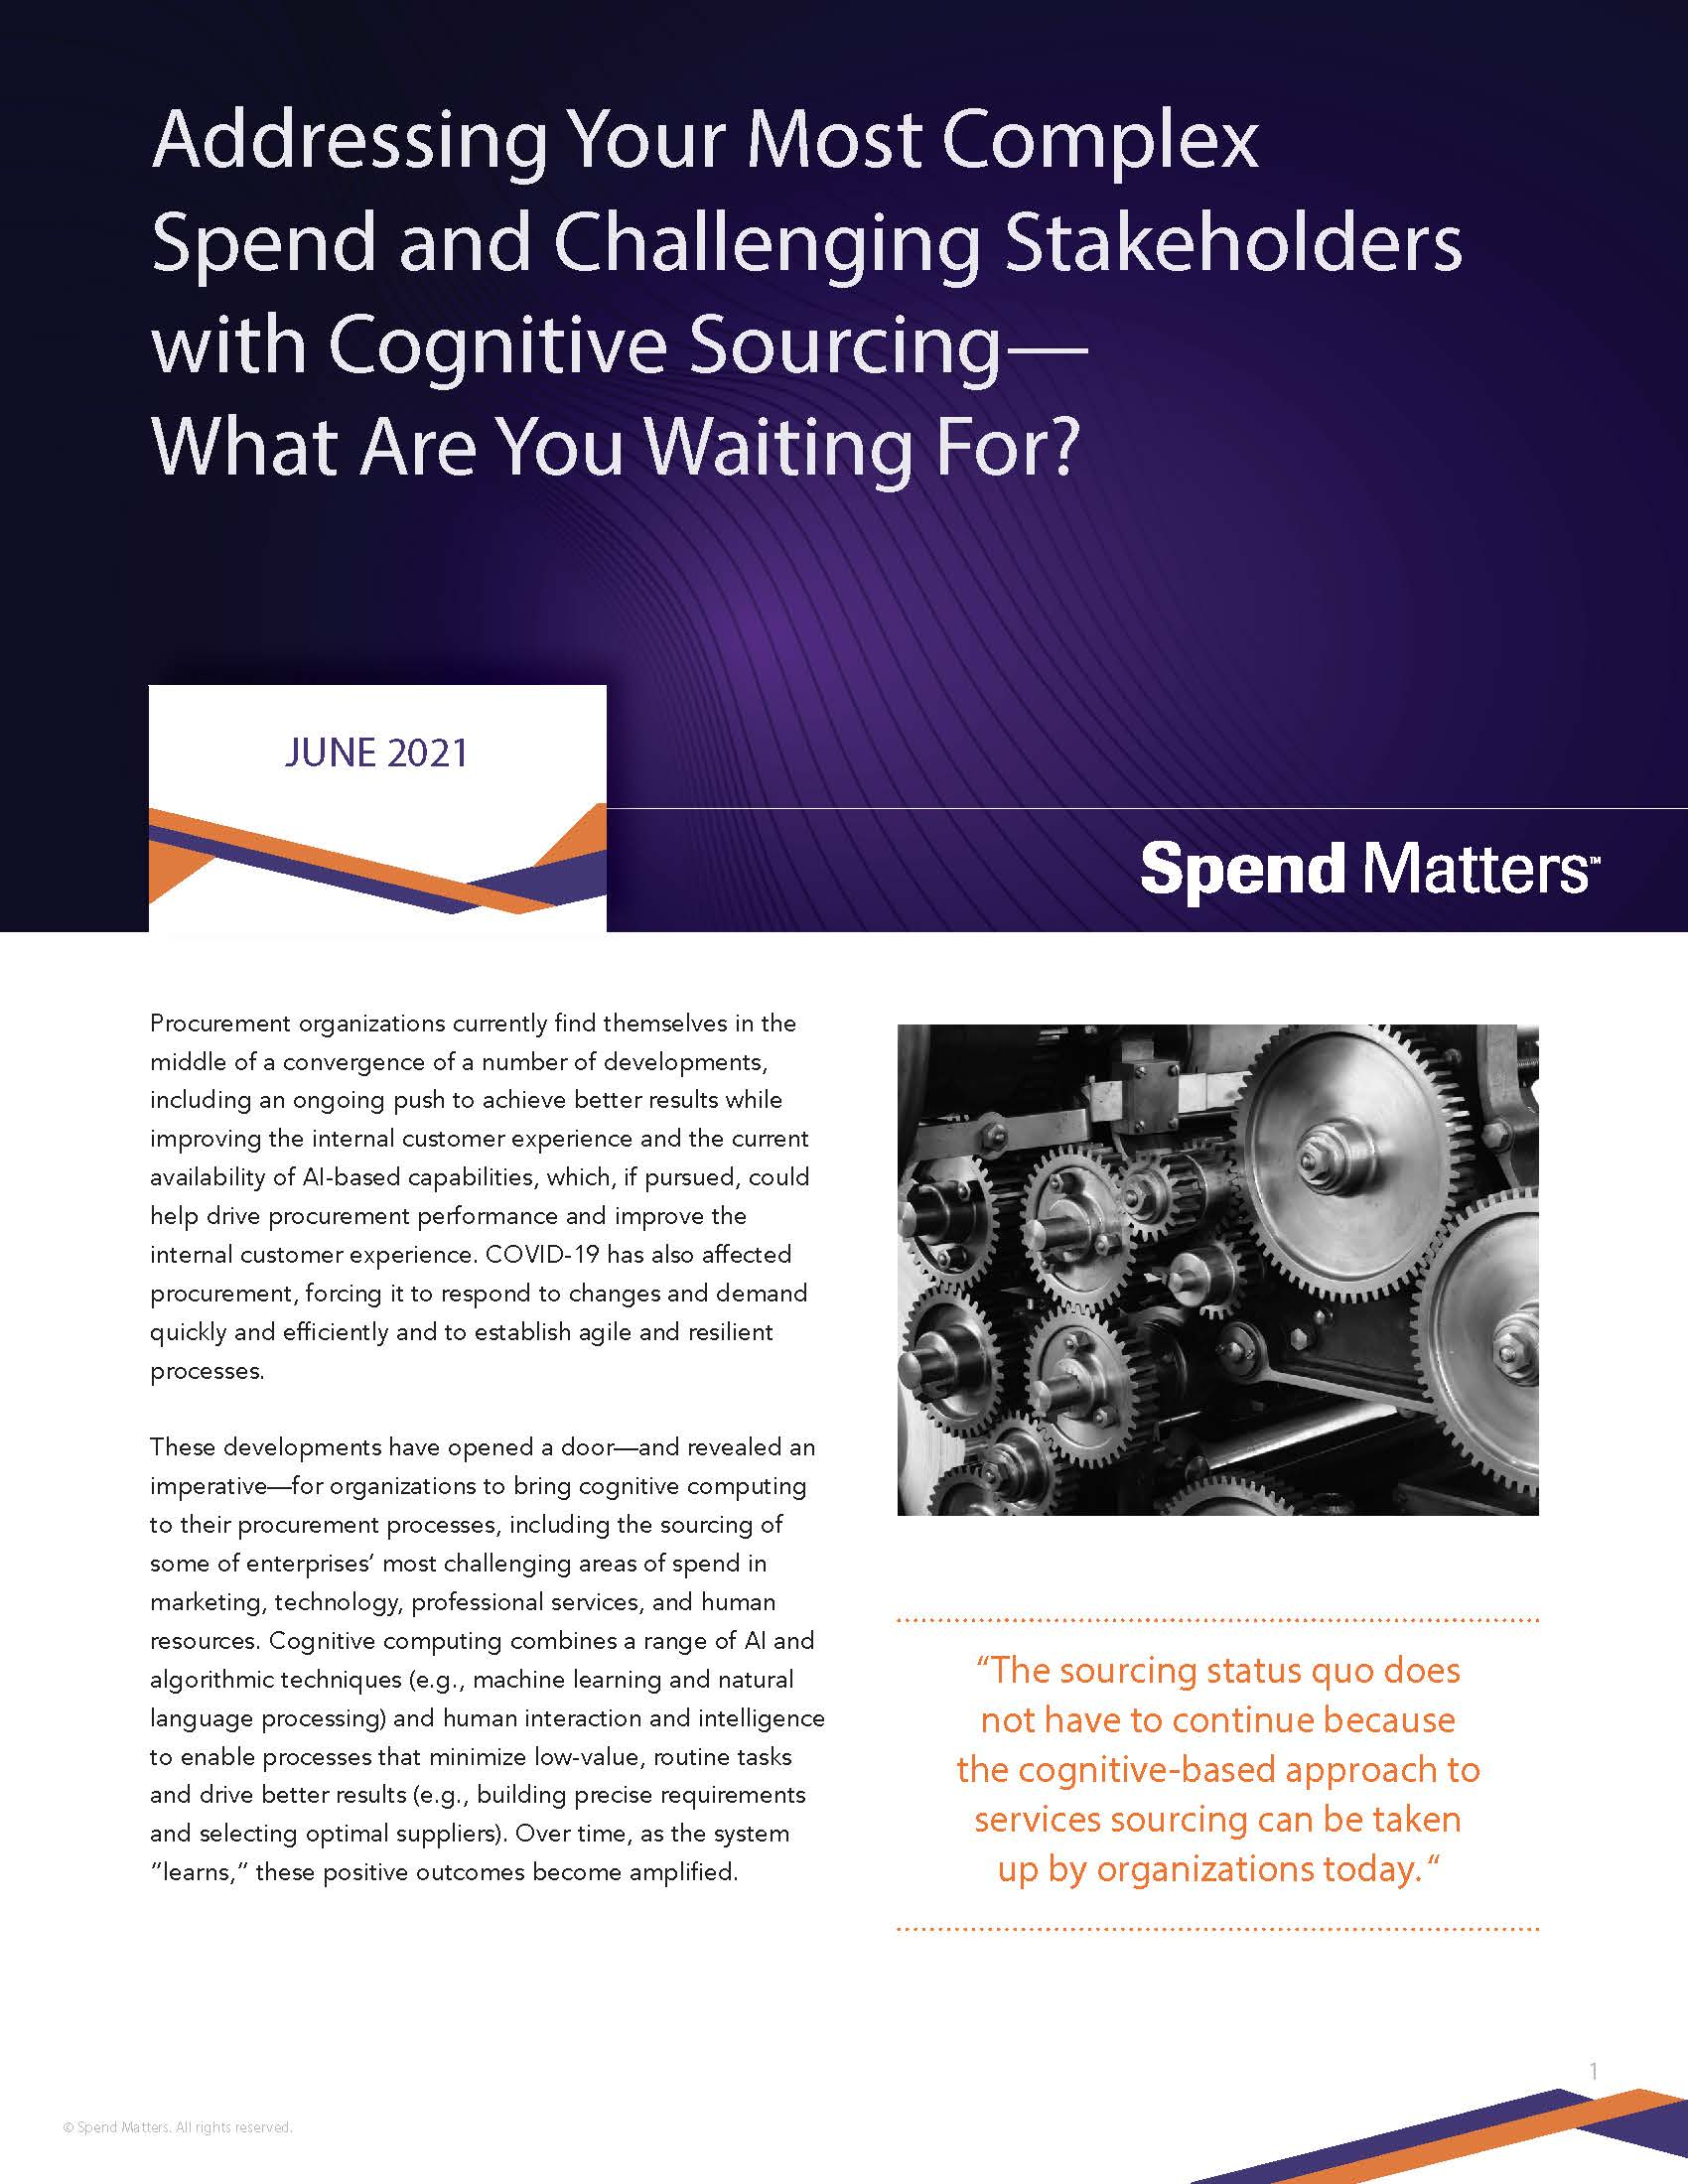 Spend Matters Globality Addressing Complex Spend and Challenging Stakeholders with Cognitive Sourcing